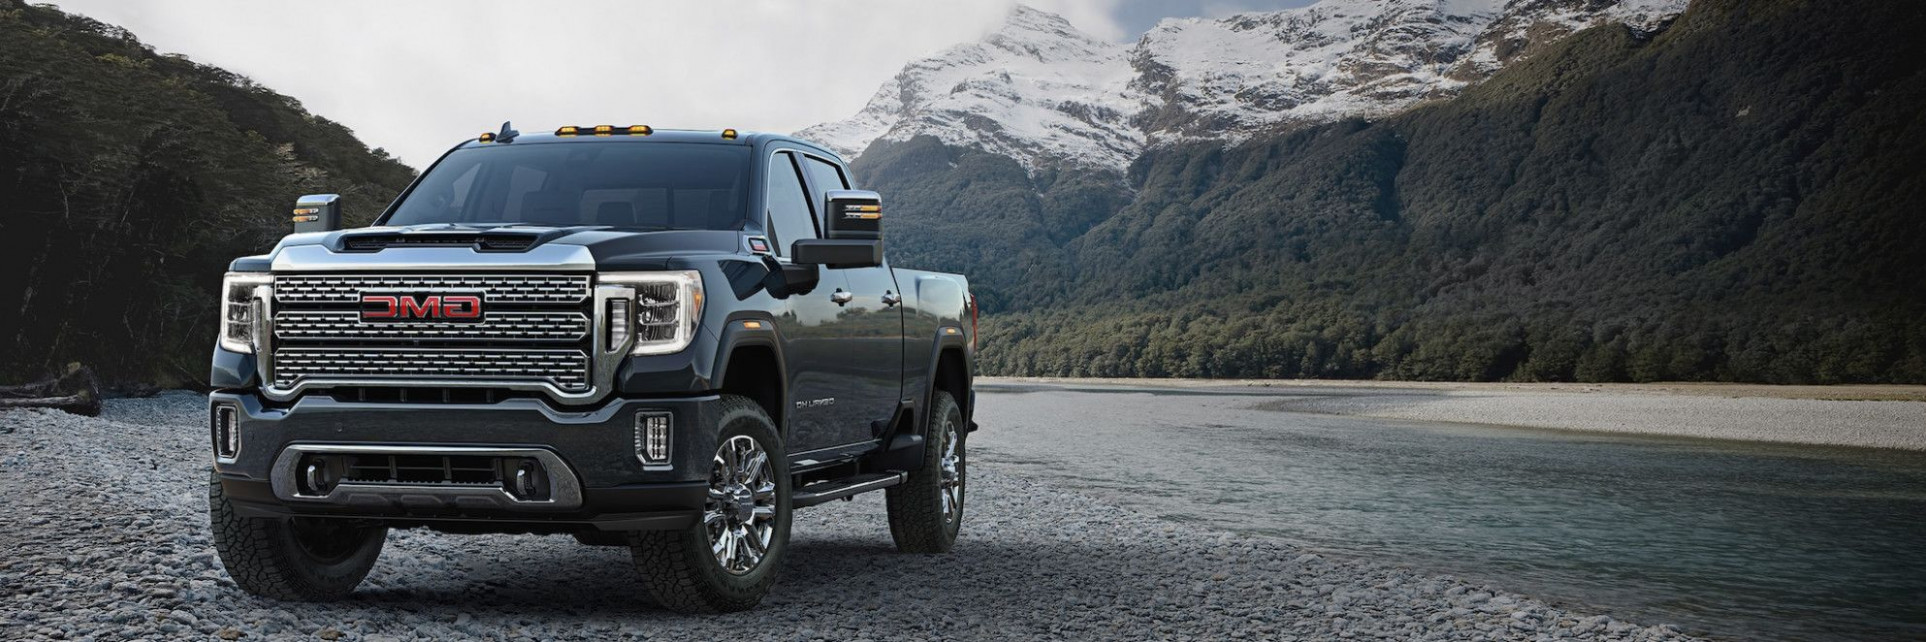 I Will Tell You The Truth About Used 11 GMC Sierra Denali In The ...